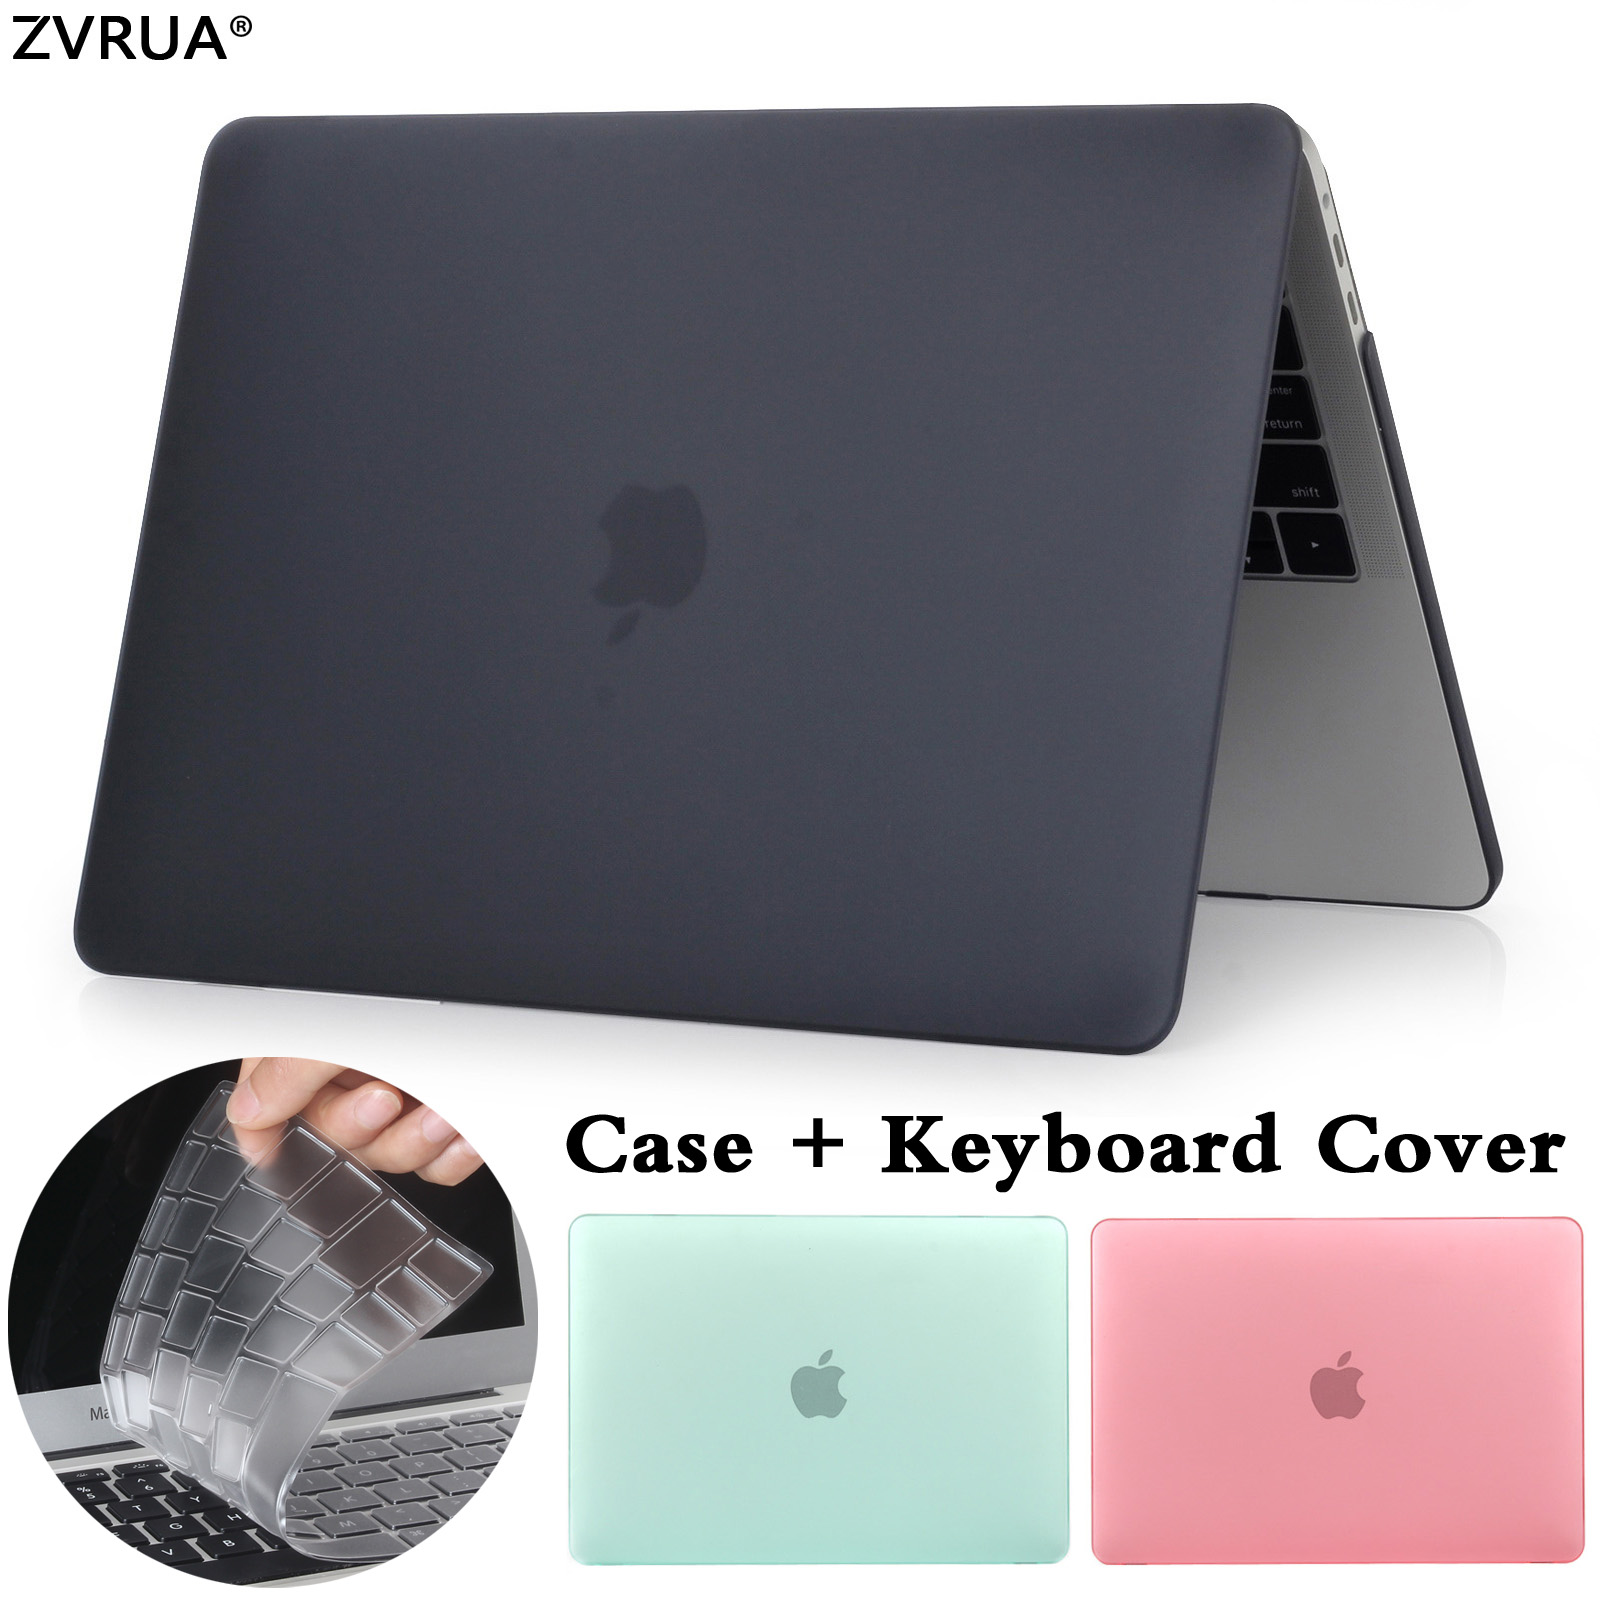 2019 New Hard Matte Frosted Case Cover Sleeve For MacBook Air 11 A1465 Air 13 Inch A1466 Pro 13.3 15 Retina A1502 Keyboard Cover